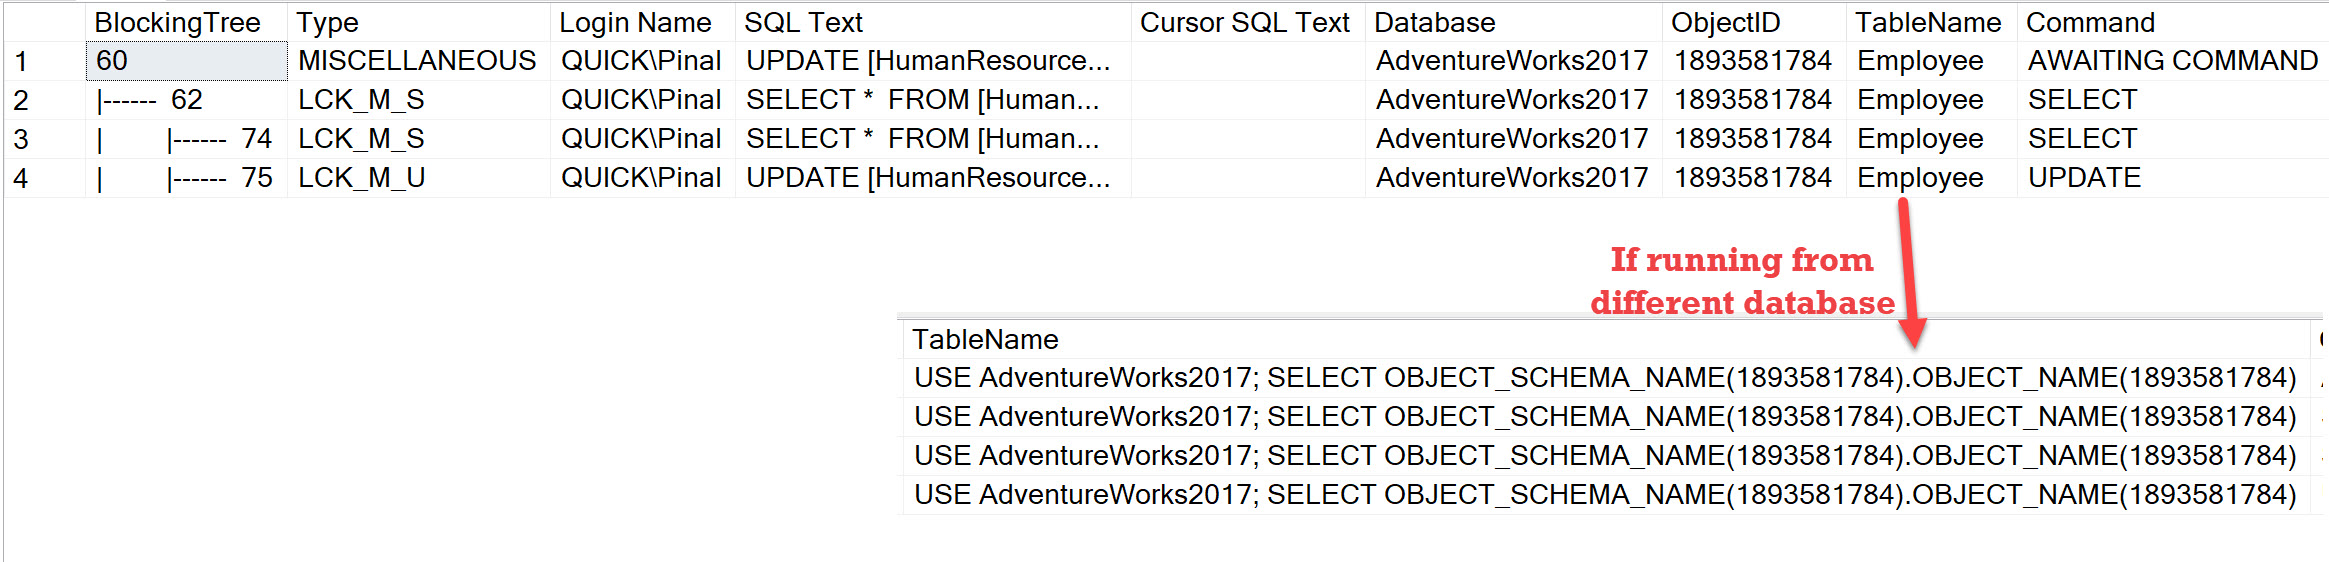 SQL SERVER - Blocking Tree - Identifying Blocking Chain Using SQL Scripts blockingtree